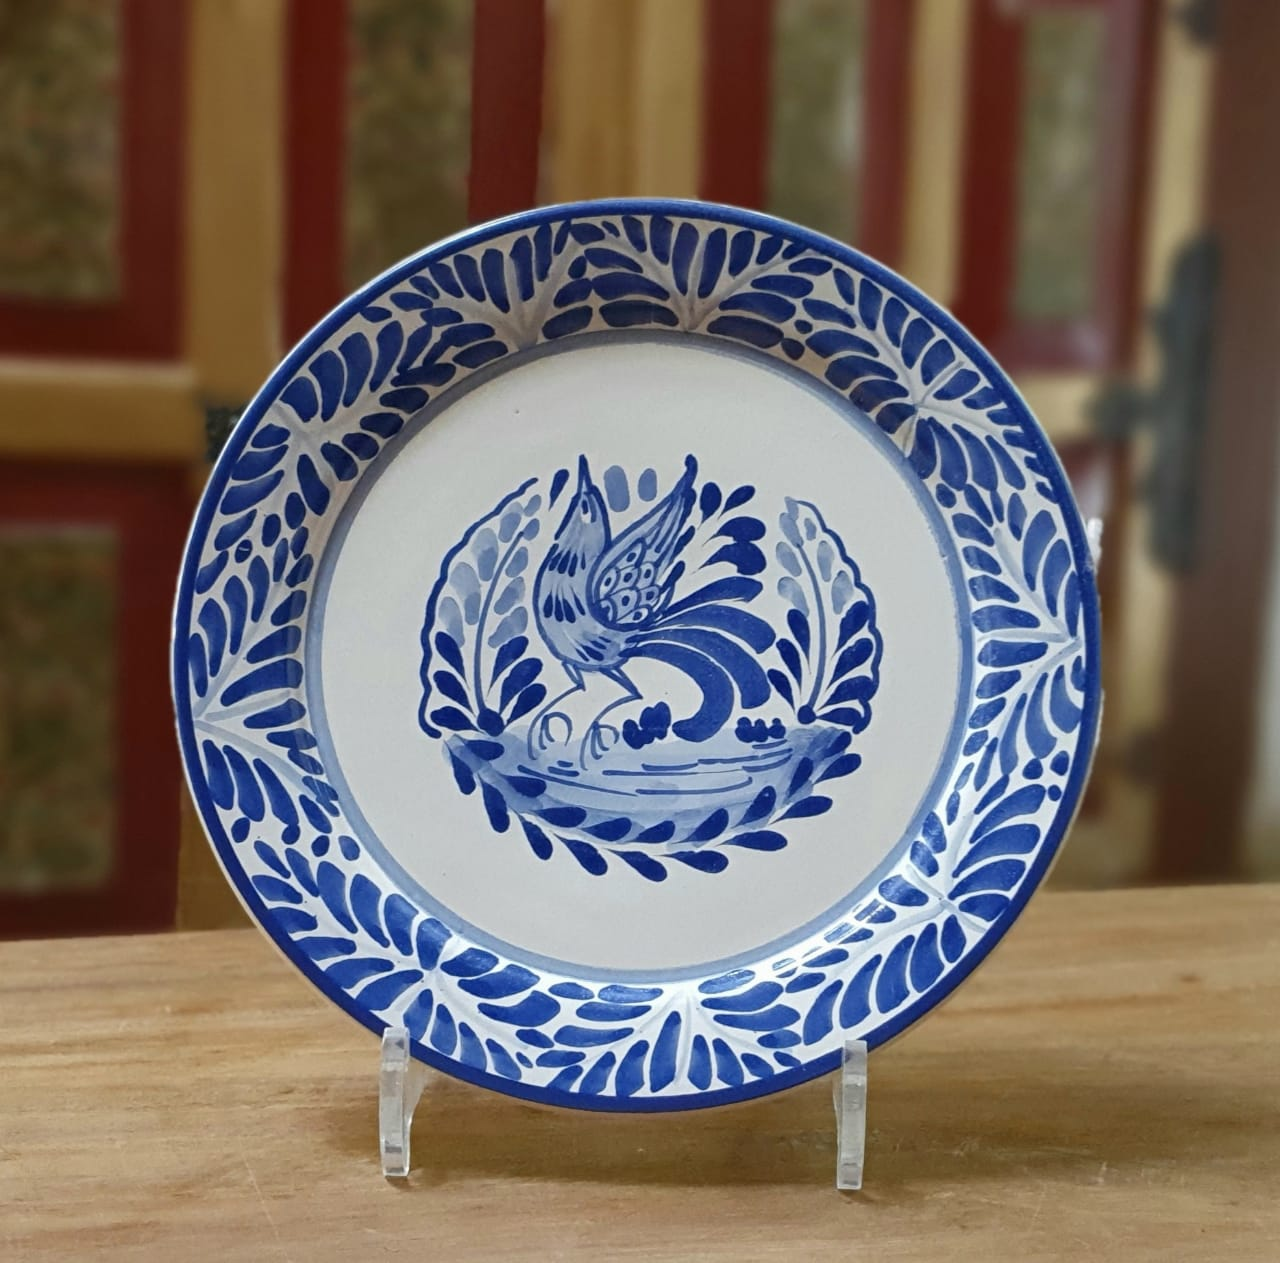 Bird Plate Blue and White